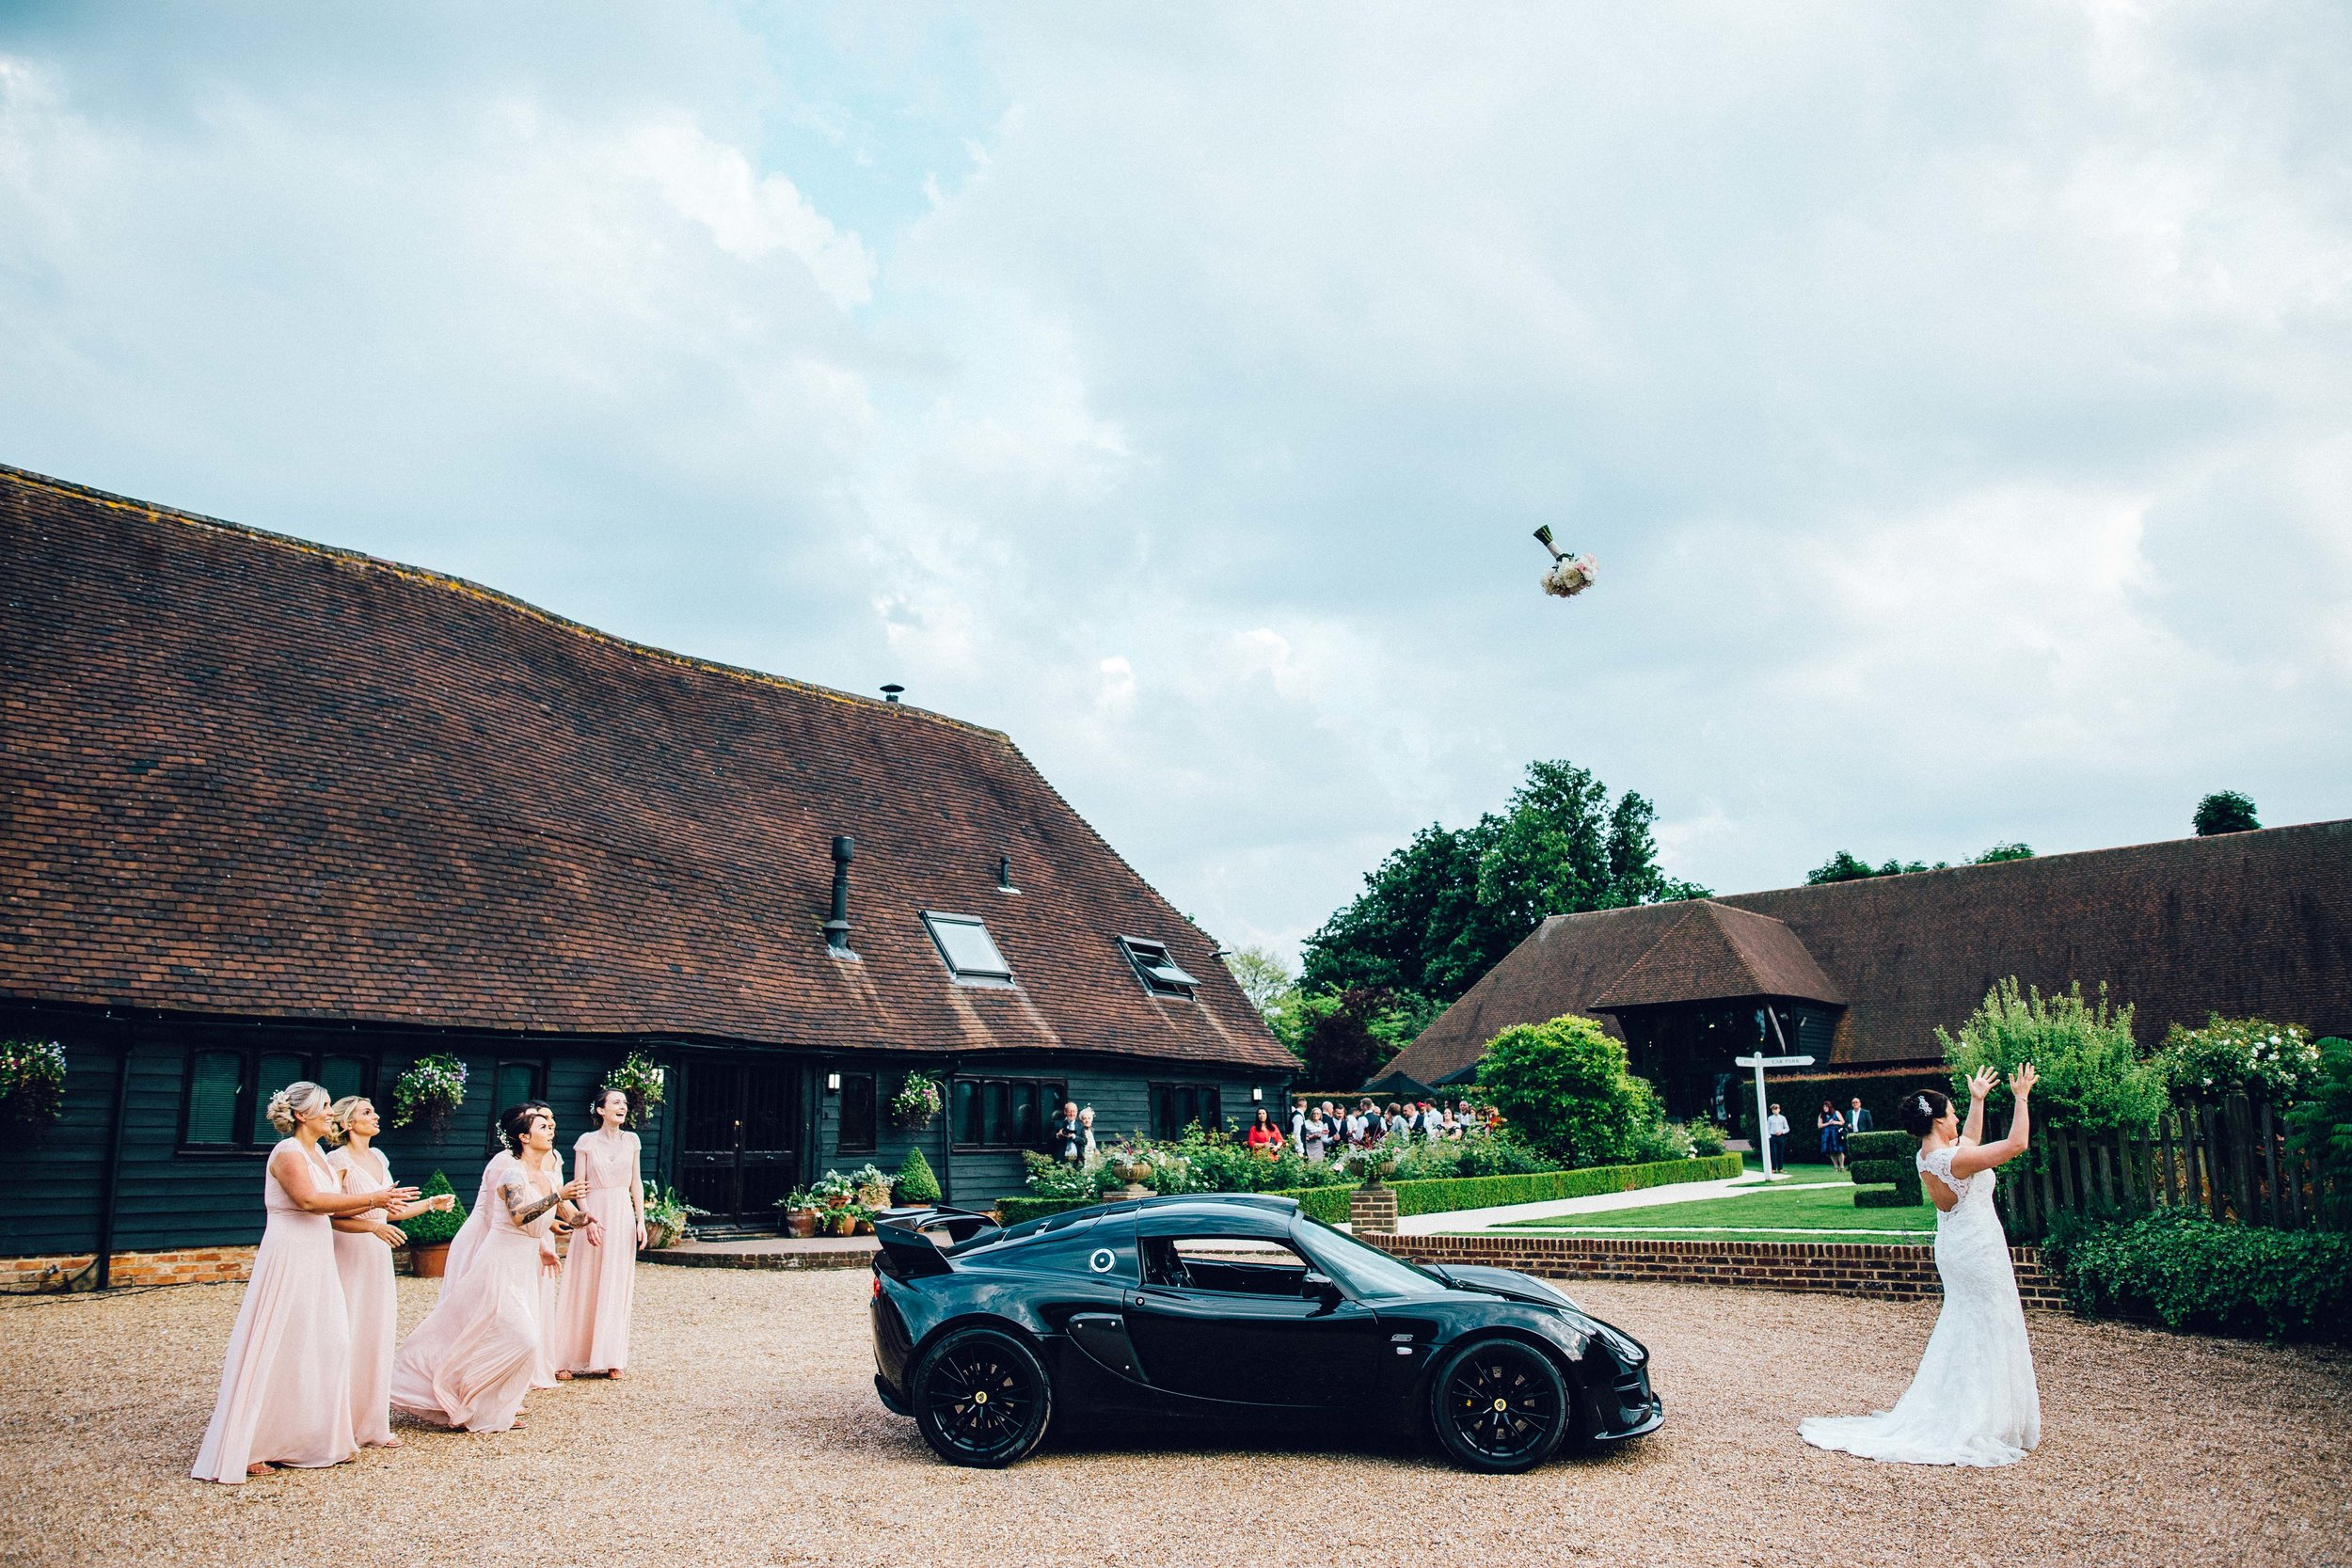 Bouquet throwing over a sports car!